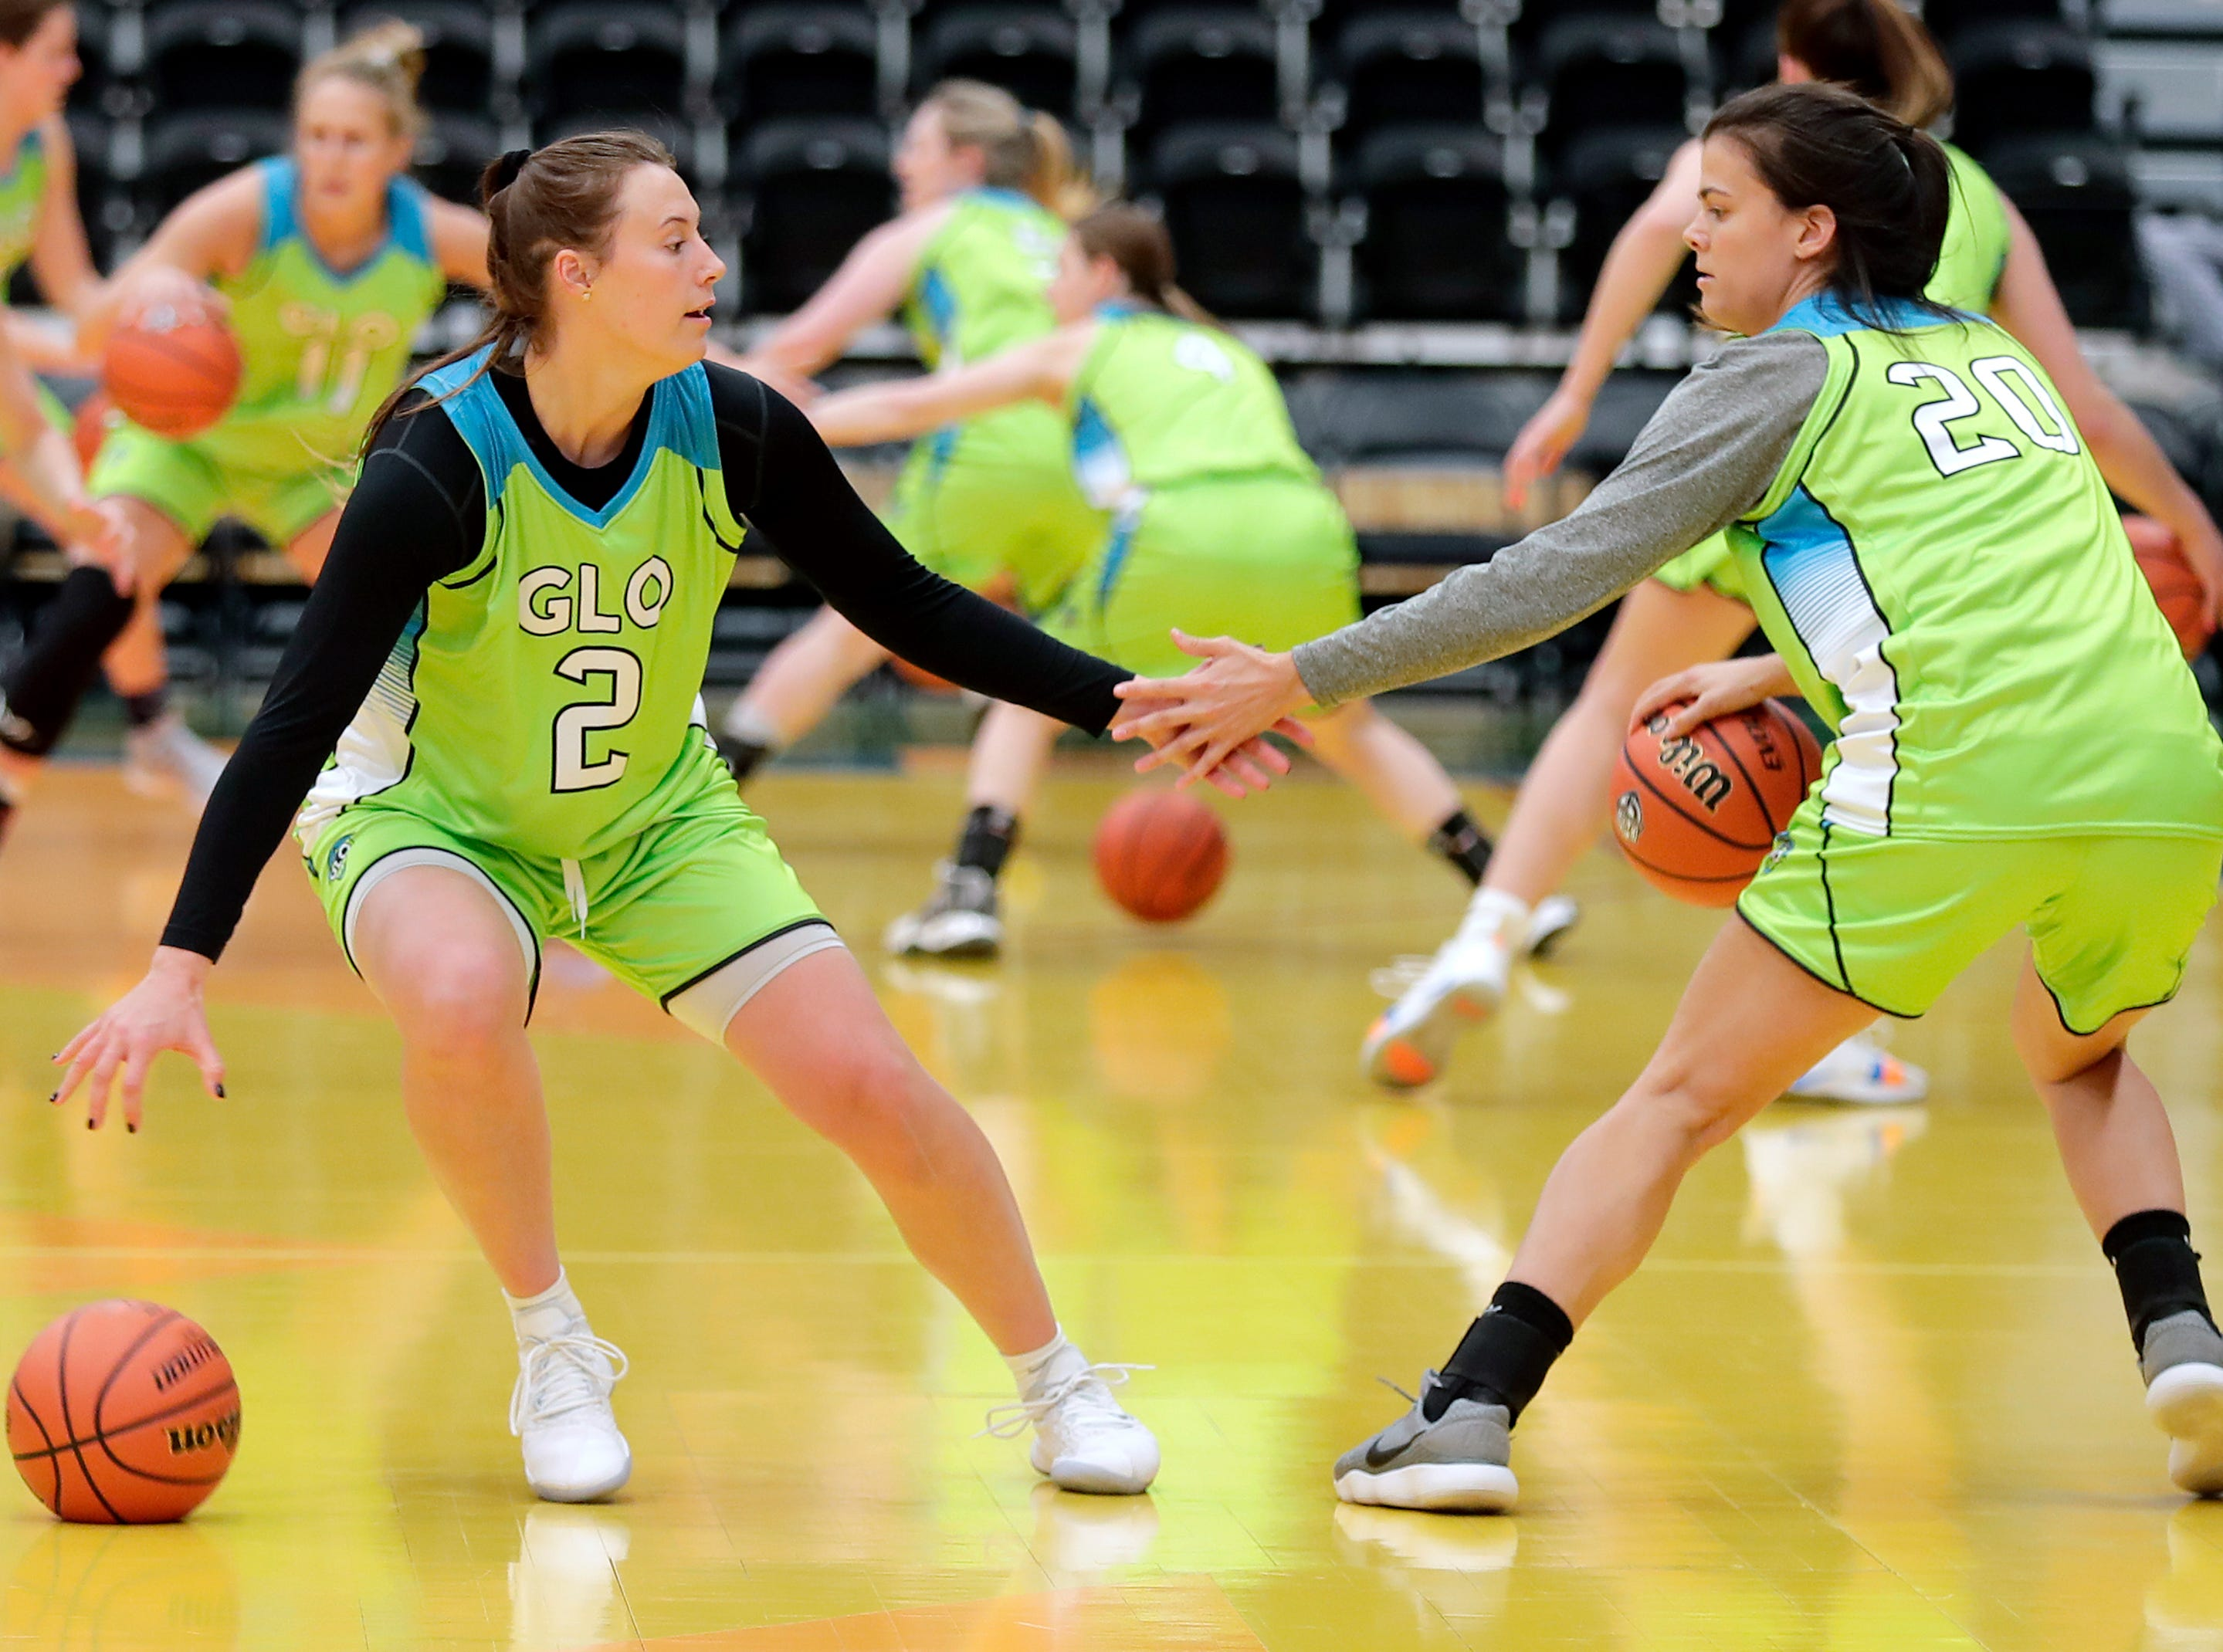 Wisconsin Glo's #2 Mehryn Kraker and #20 Gaby Bronson run a drill duriong a practice at Menominee Nation Arena on Tuesday, May 7, 2019, in Oshkosh, Wis. The Wisconsin Glo is a professional women's basketball team, they will play their first game on Friday, May 10, 2019 in Oshkosh. 